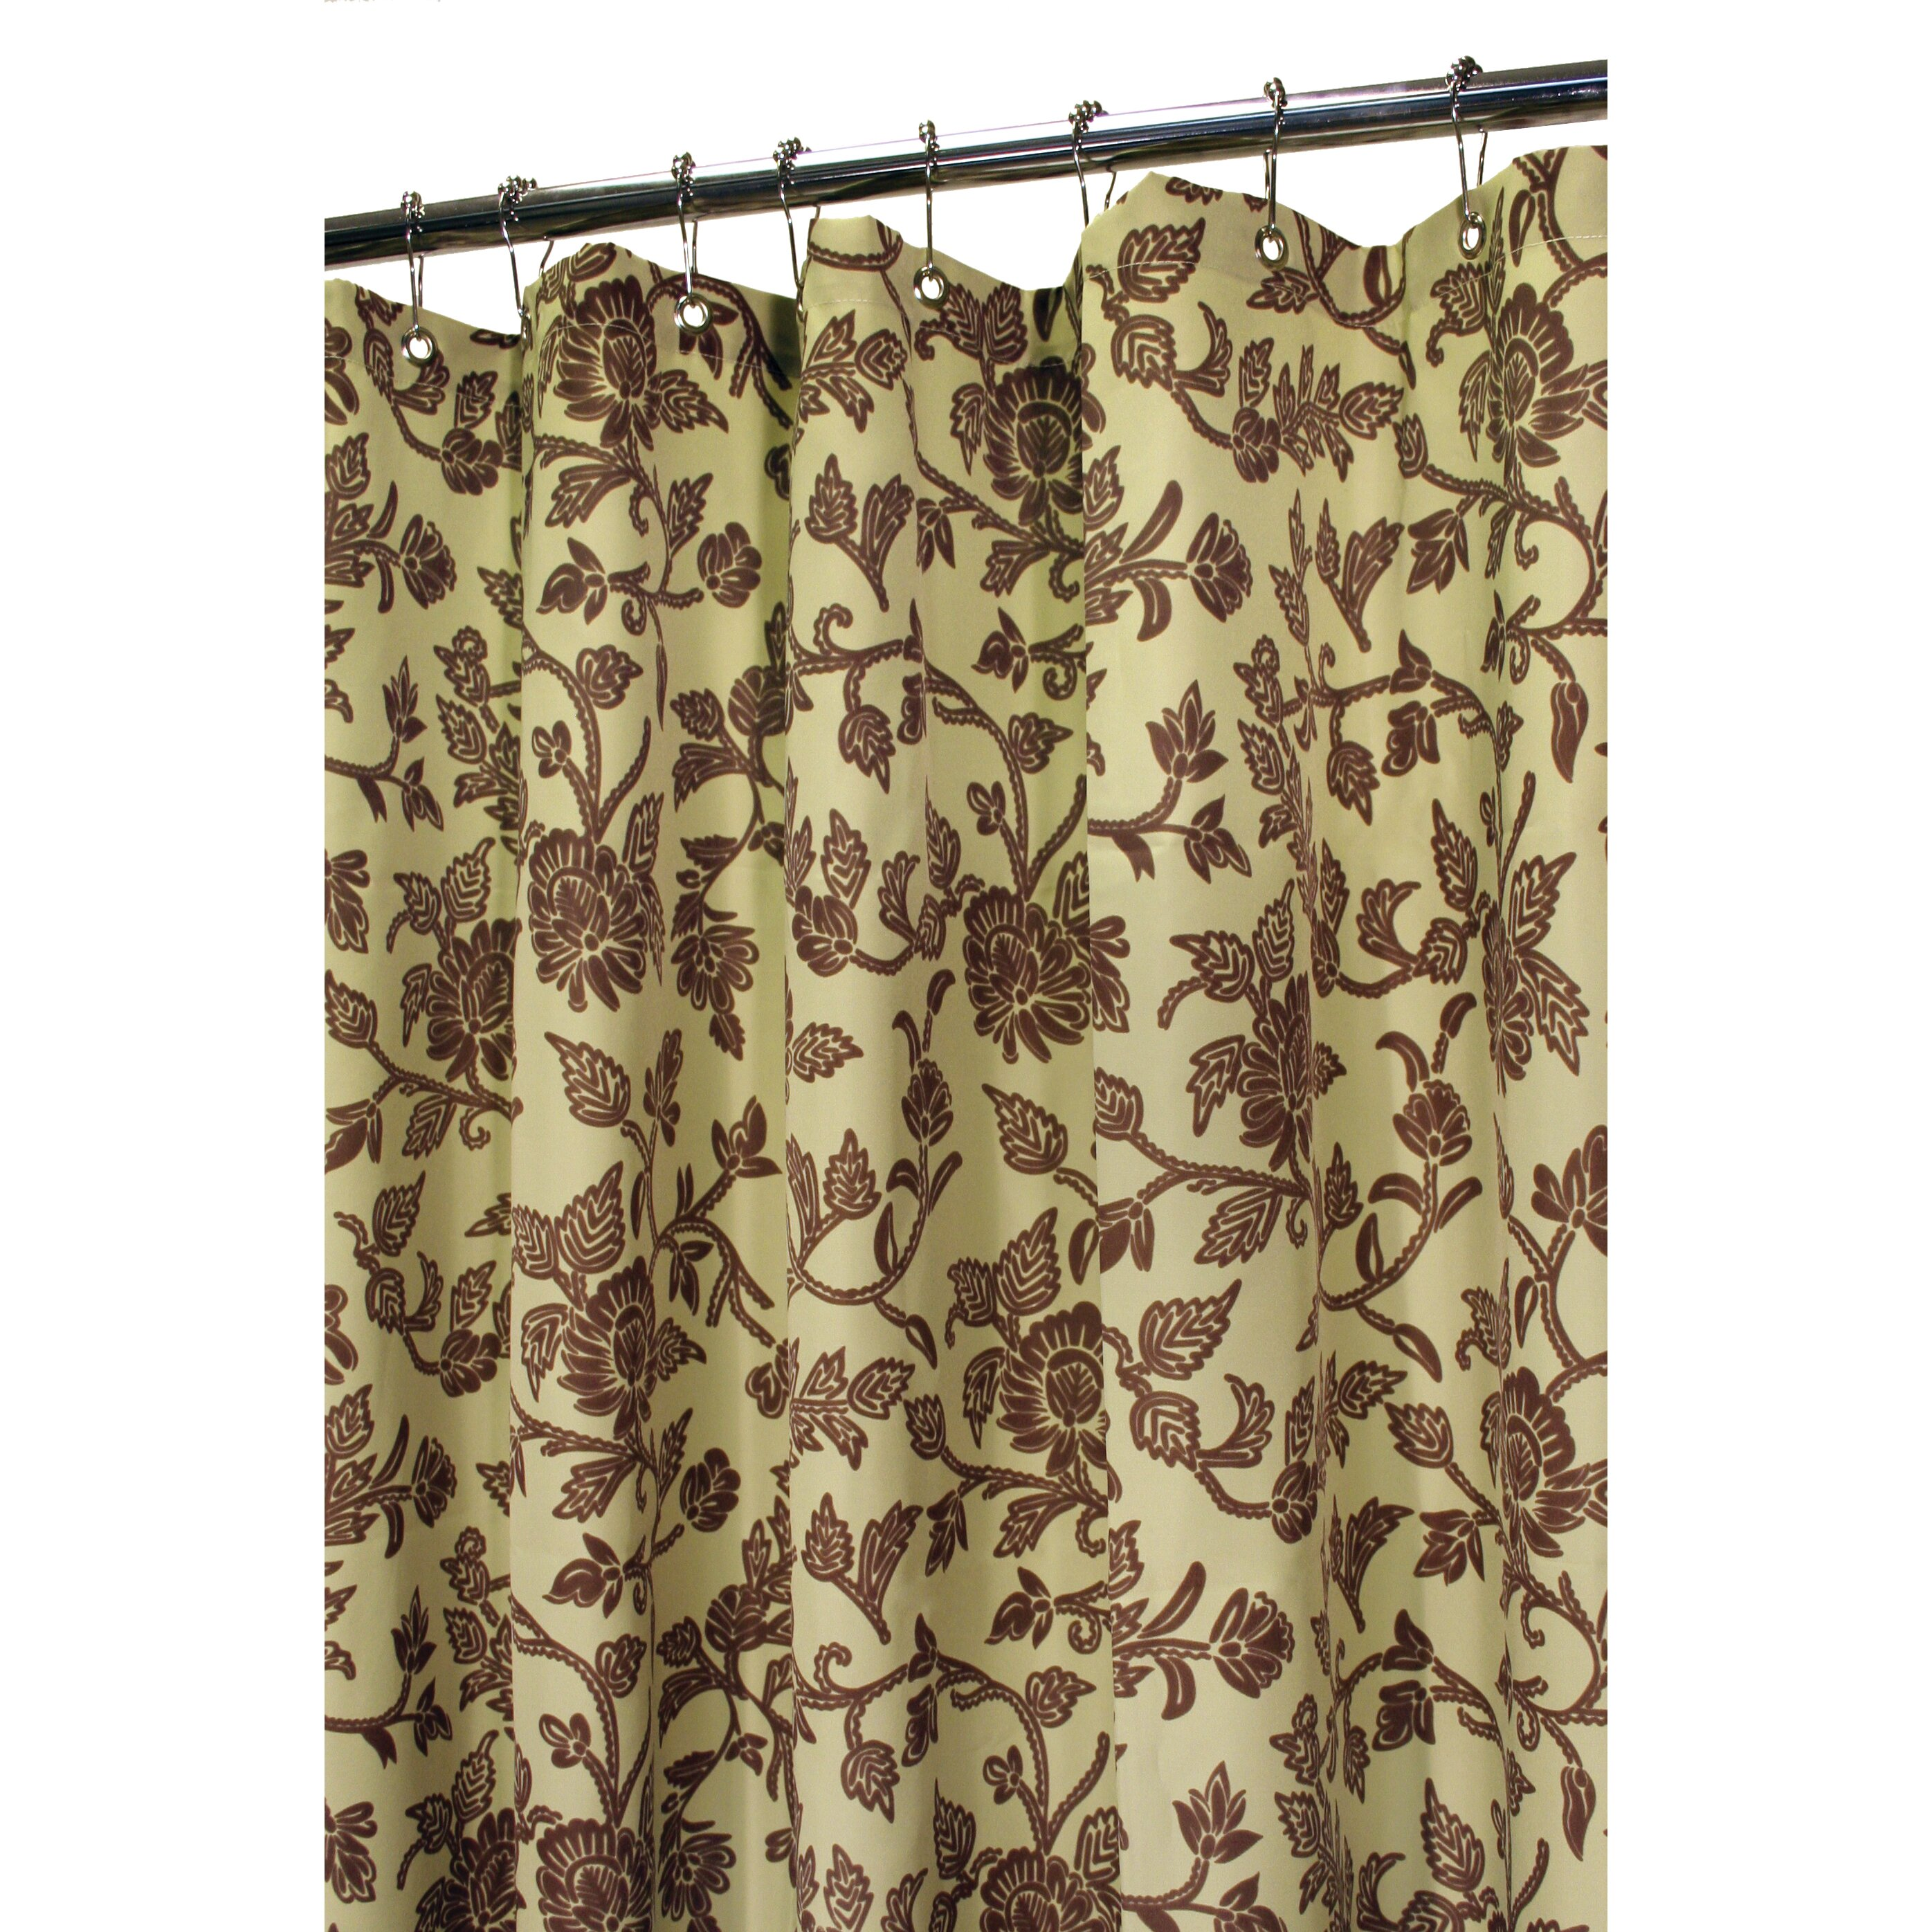 wayfair curtains on sale watershed prints floral swirl shower curtain amp reviews 7022